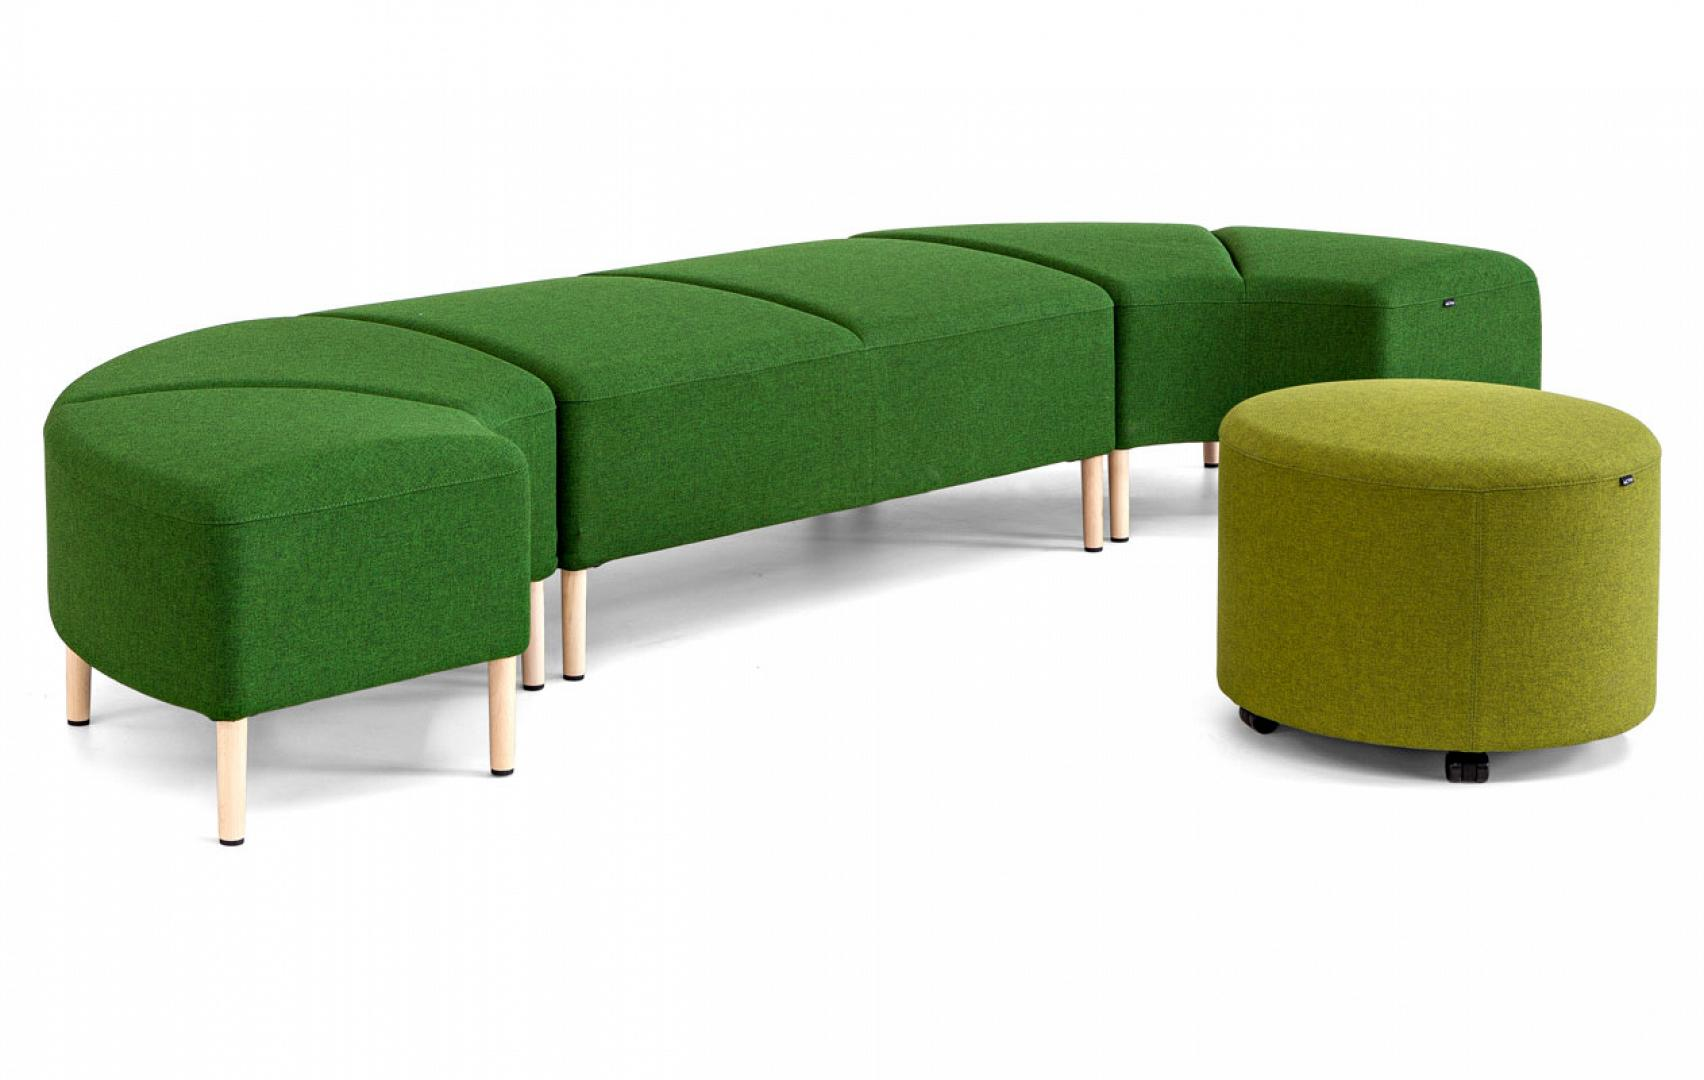 SOFT SEATING, calidez estética